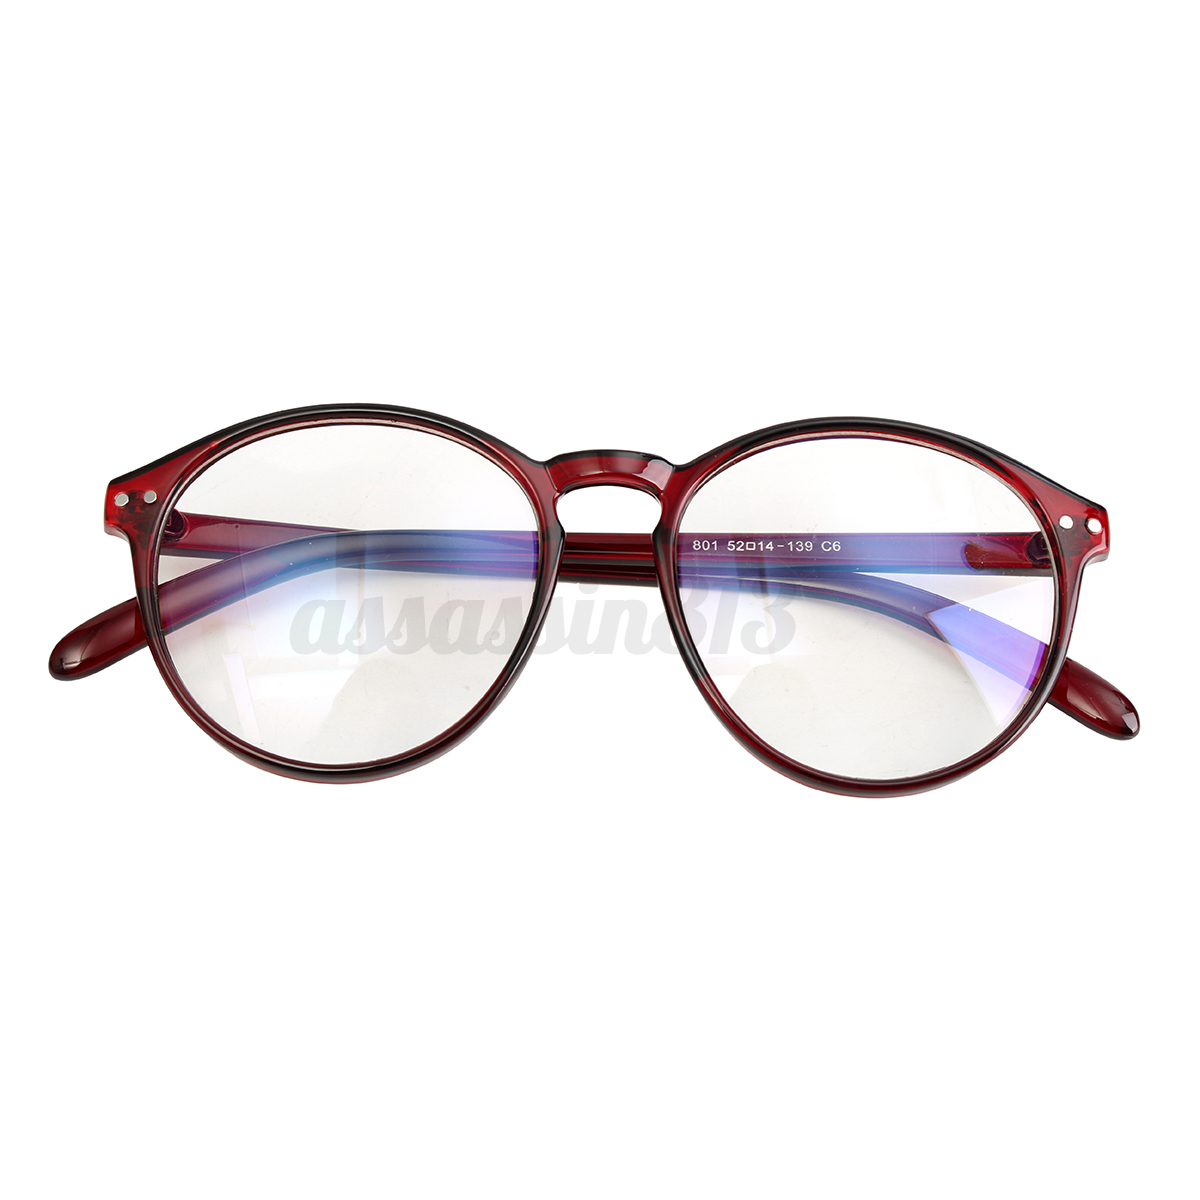 Chic Round Eyeglass Frame Vintage Glasses Retro Spectacles Clear ...